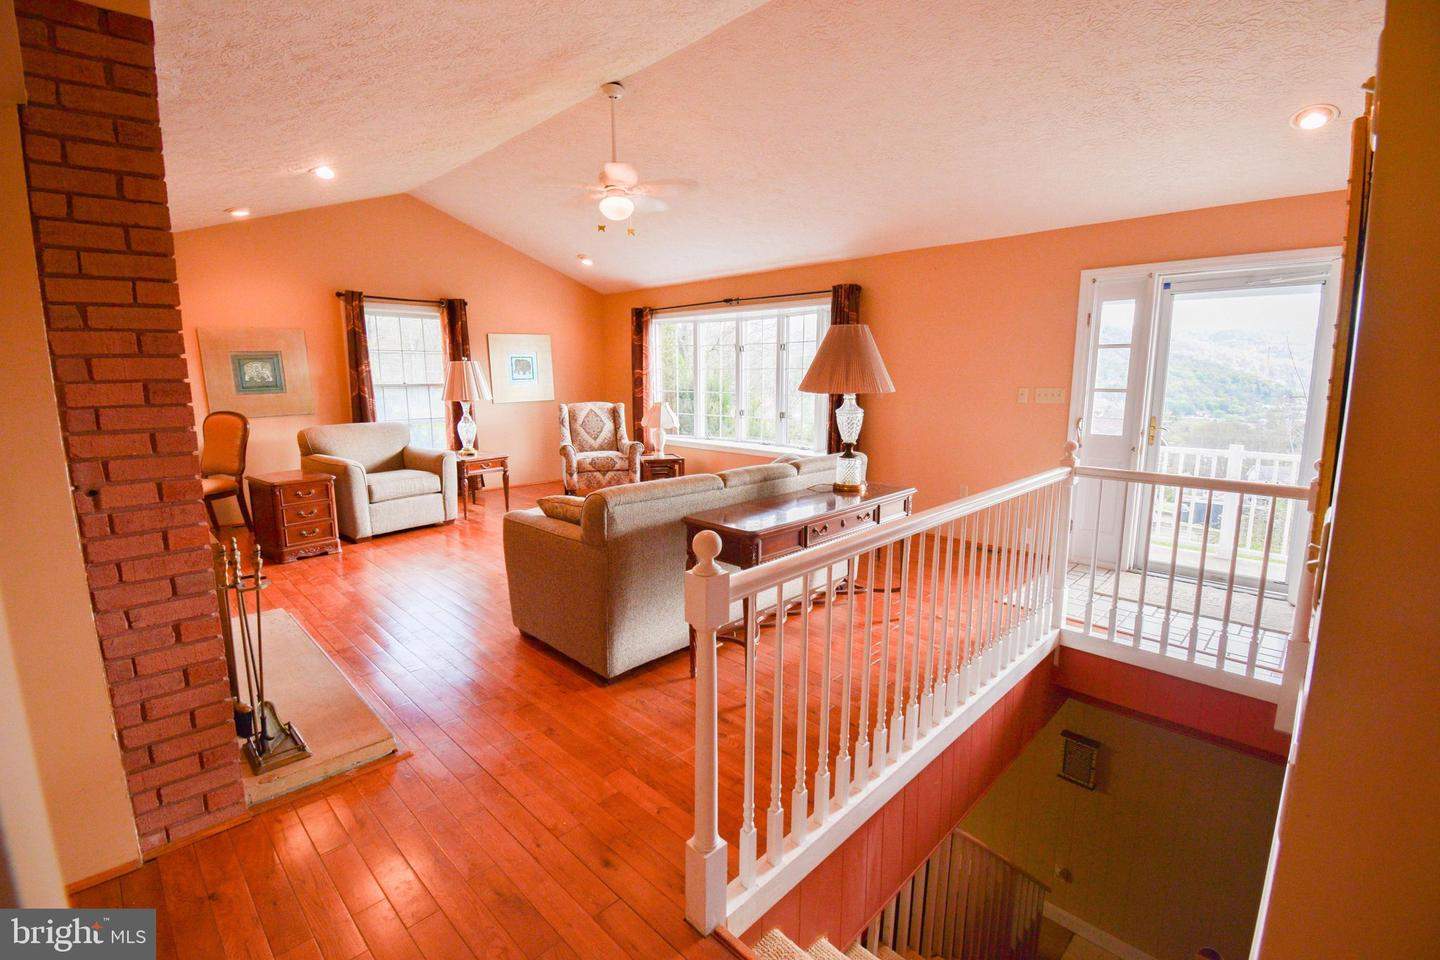 300 MARSH AVE, WESTERNPORT, Maryland 21562, 3 Bedrooms Bedrooms, ,3 BathroomsBathrooms,Single Family,For Sale,300 MARSH AVE,MDAL136766